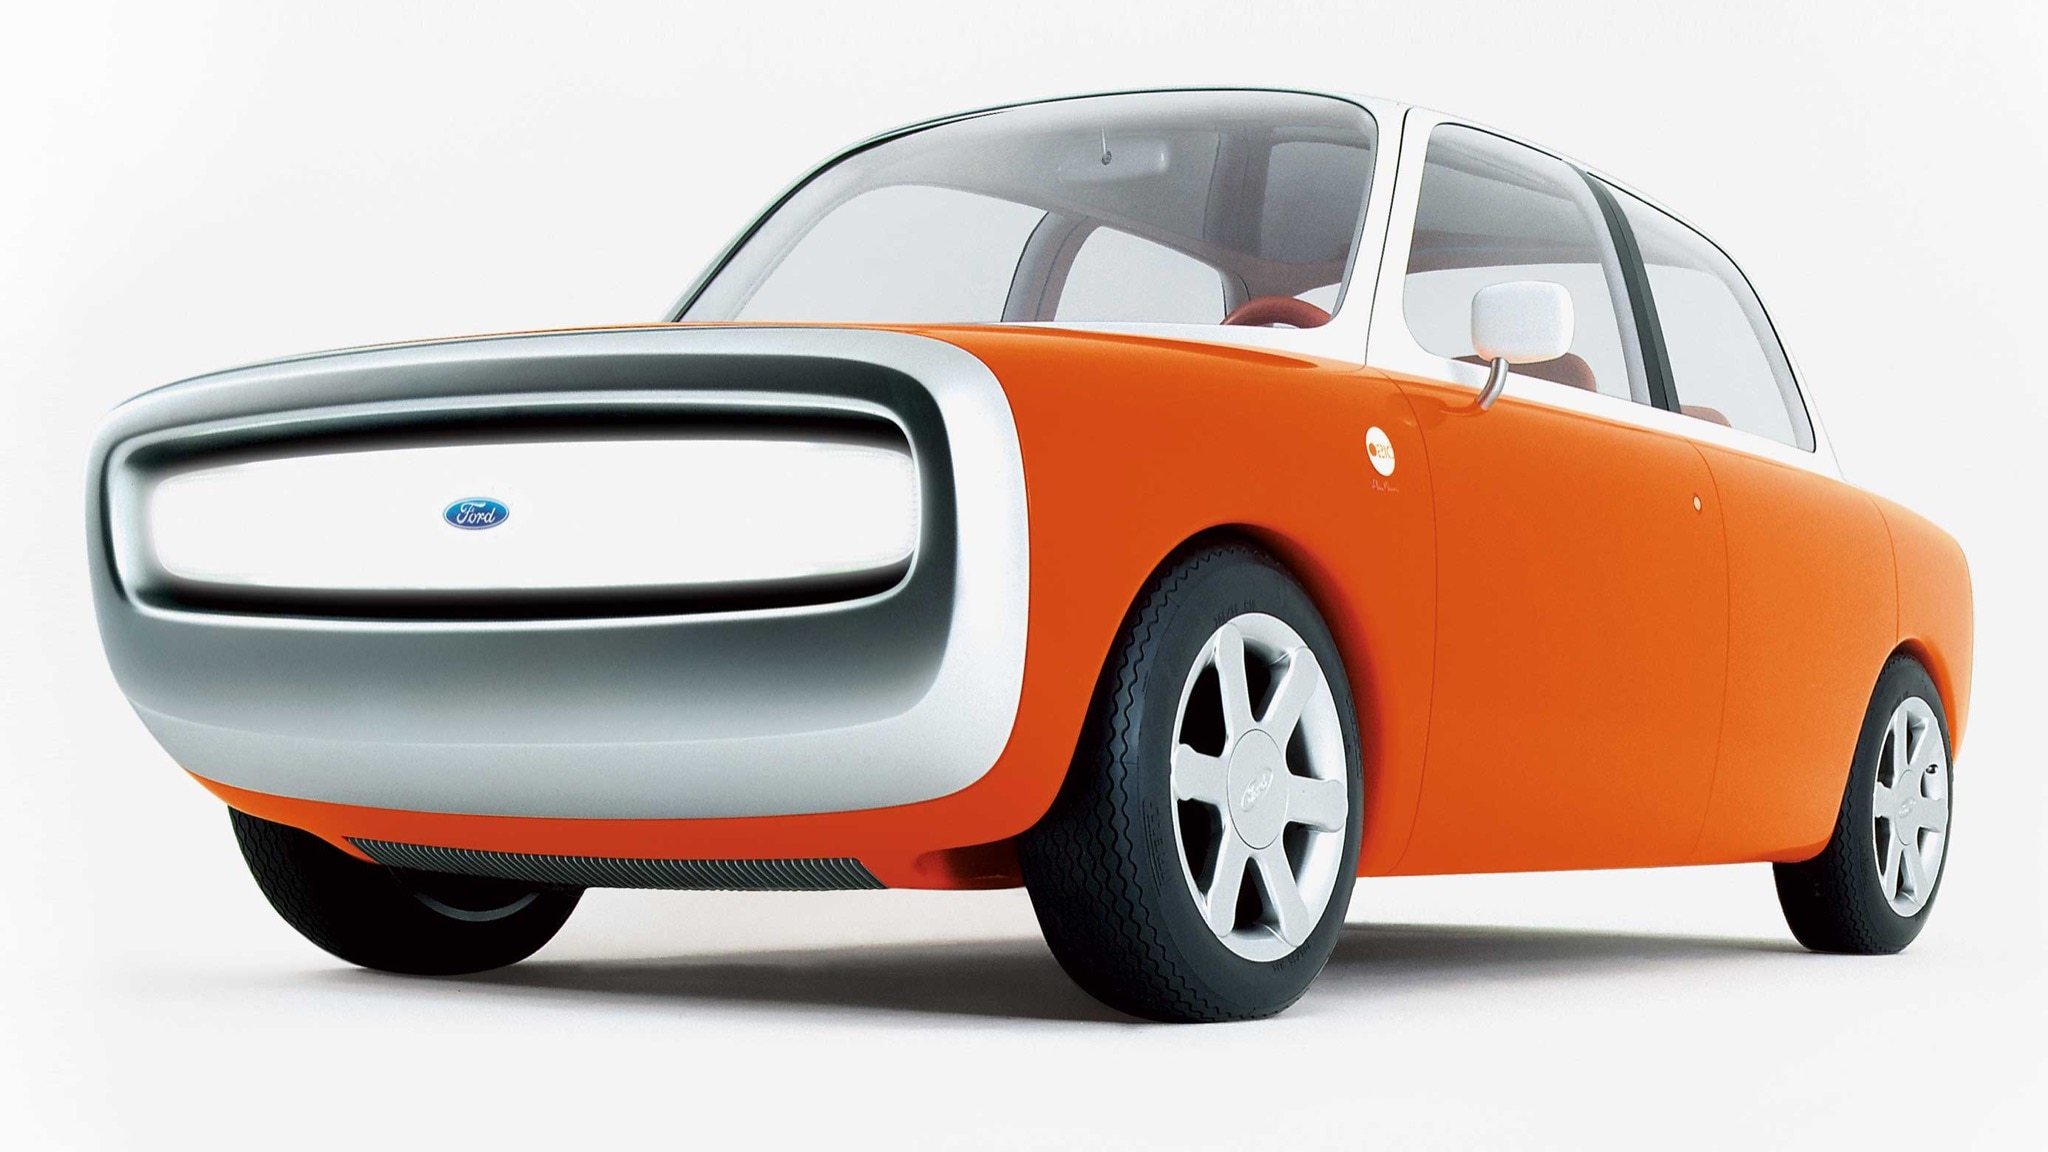 1999 Ford 021C Concept Is Adorable, and Perhaps Ahead of Its Time